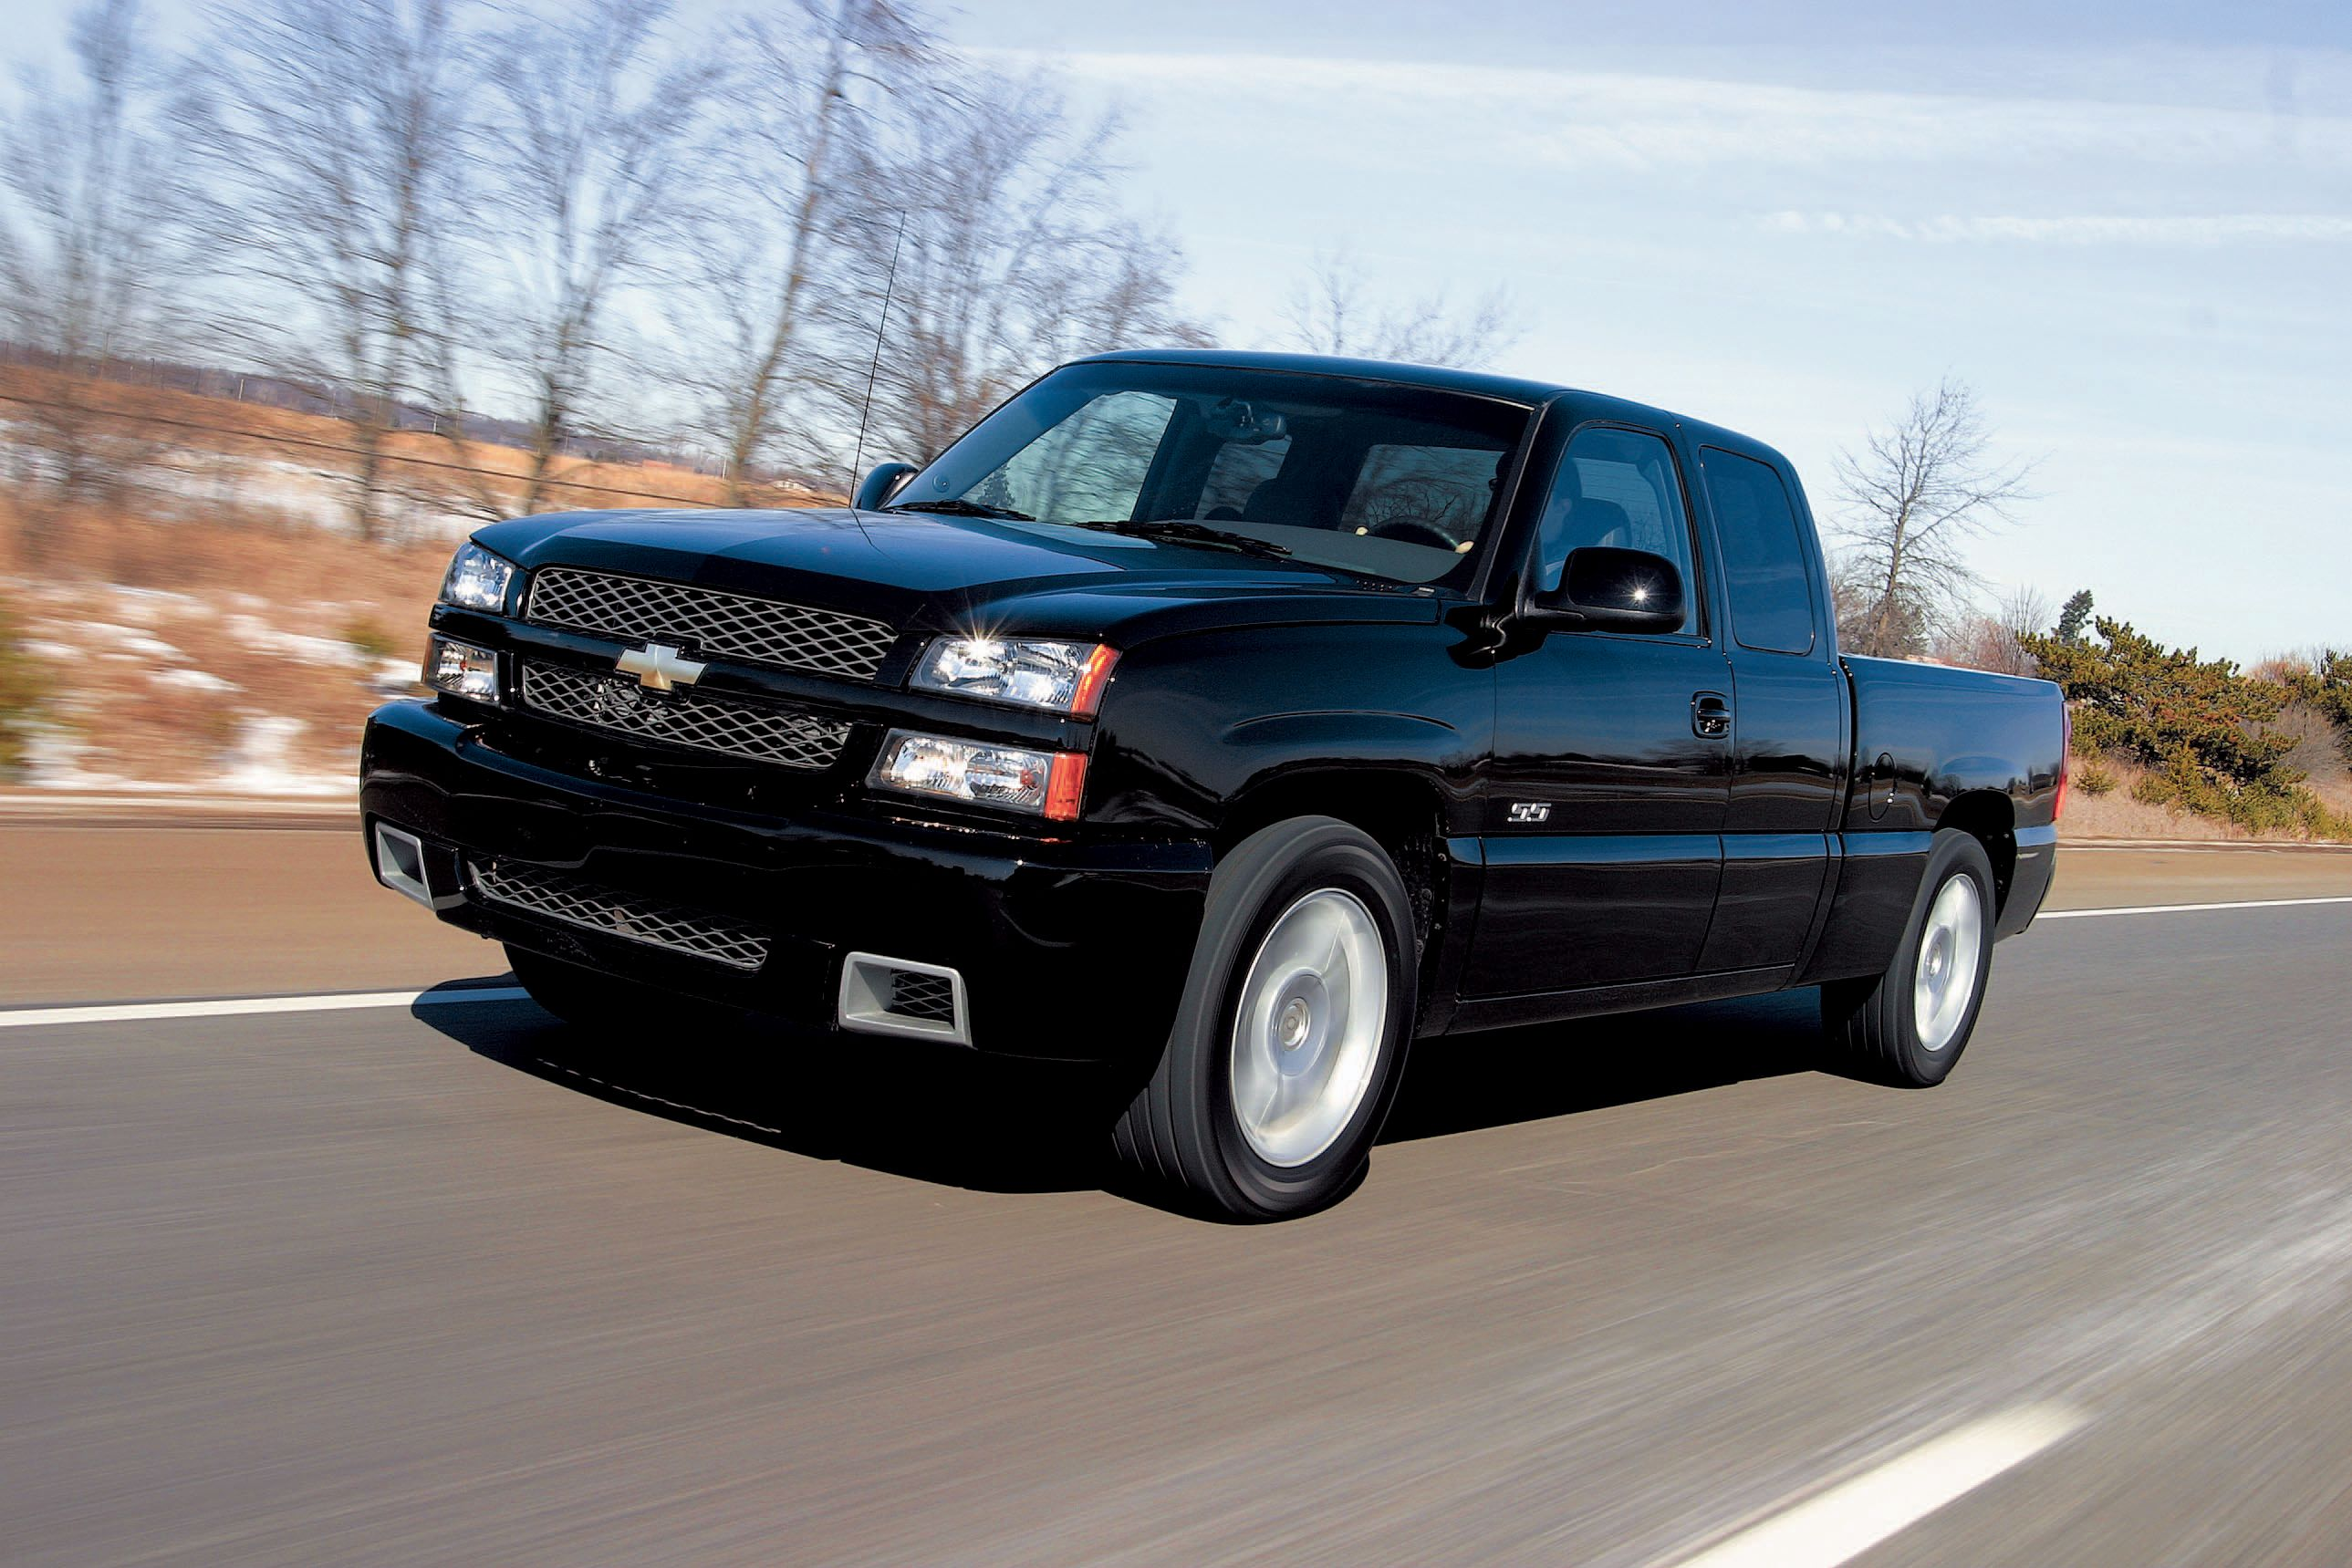 Tested 2003 Chevrolet Silverado Ss Refines The Sport Truck